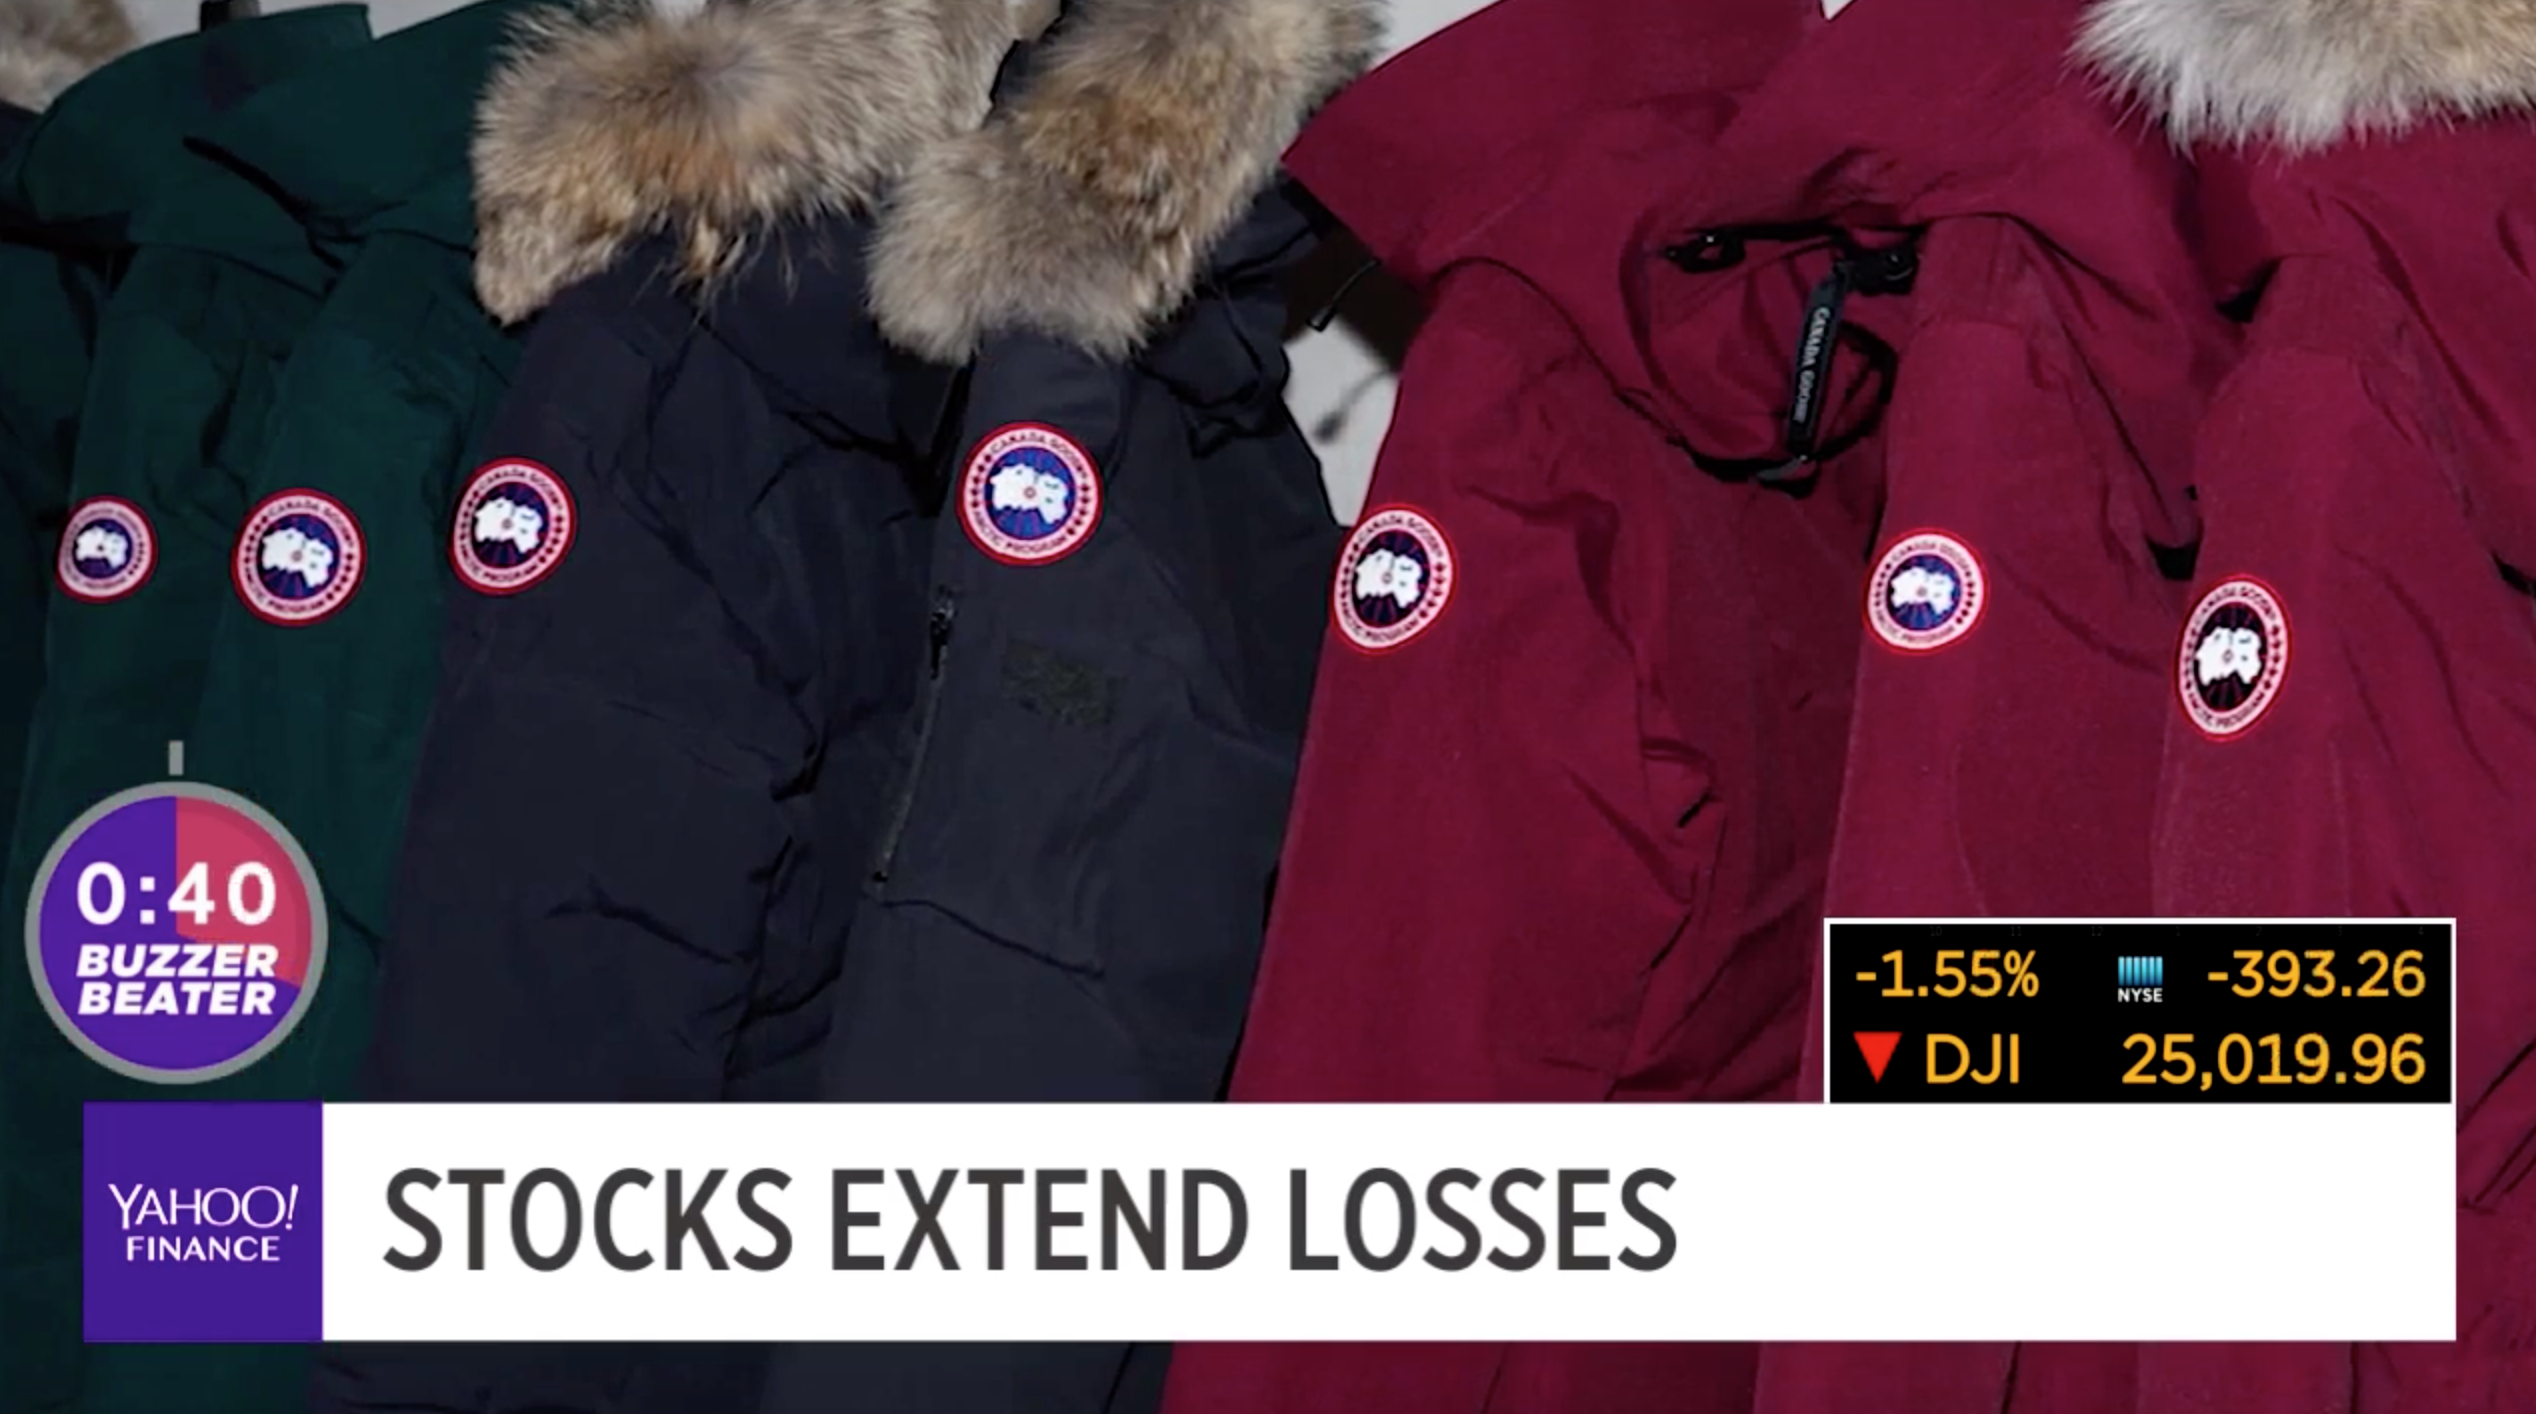 b0235fd30da Canada Goose jackets causing too big a bill [Video]